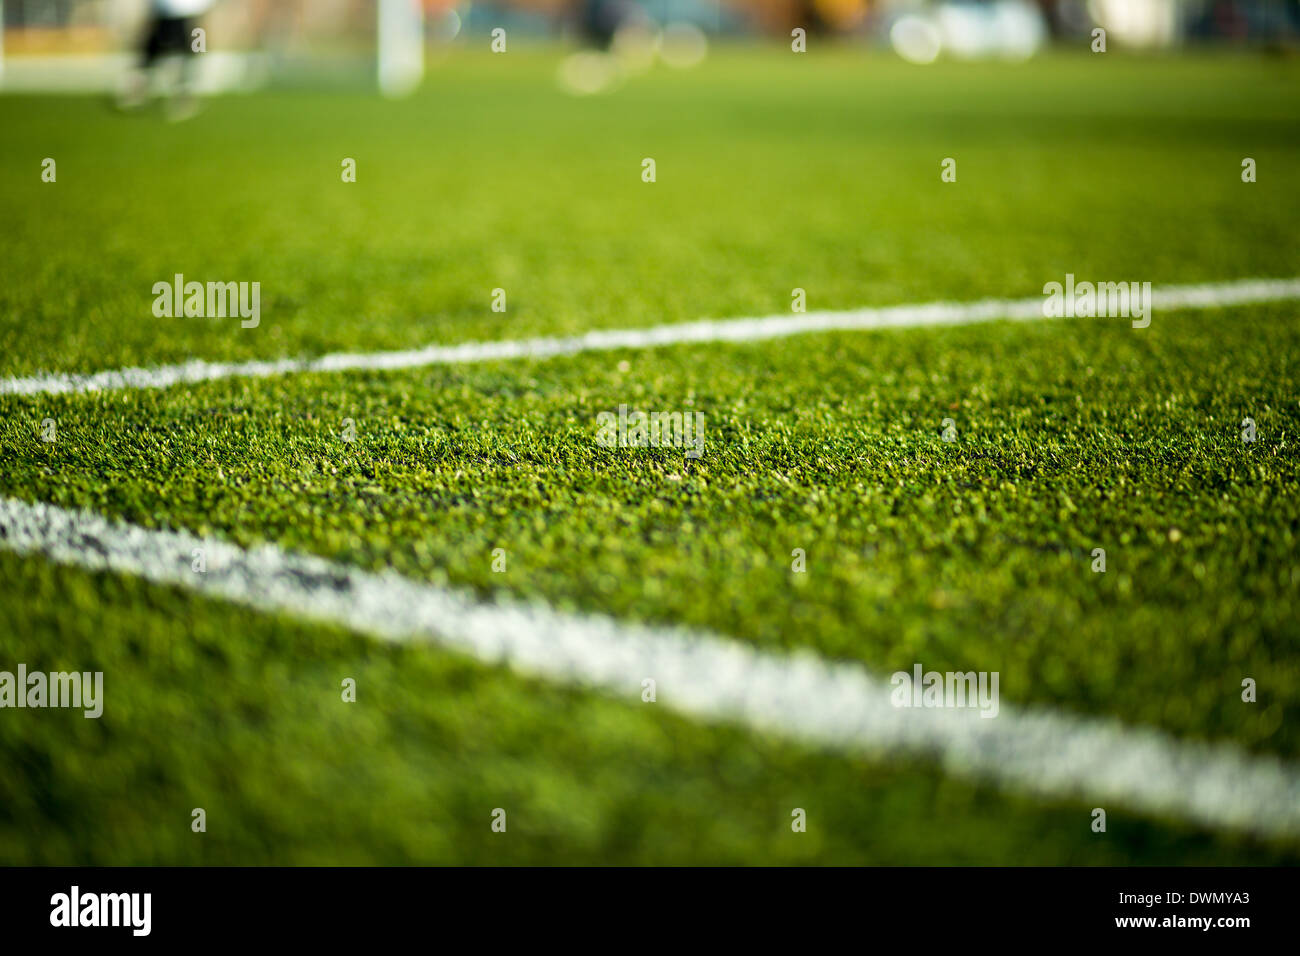 Close-up of artificial turf. Blurred legs of soccer players in the background. - Stock Image